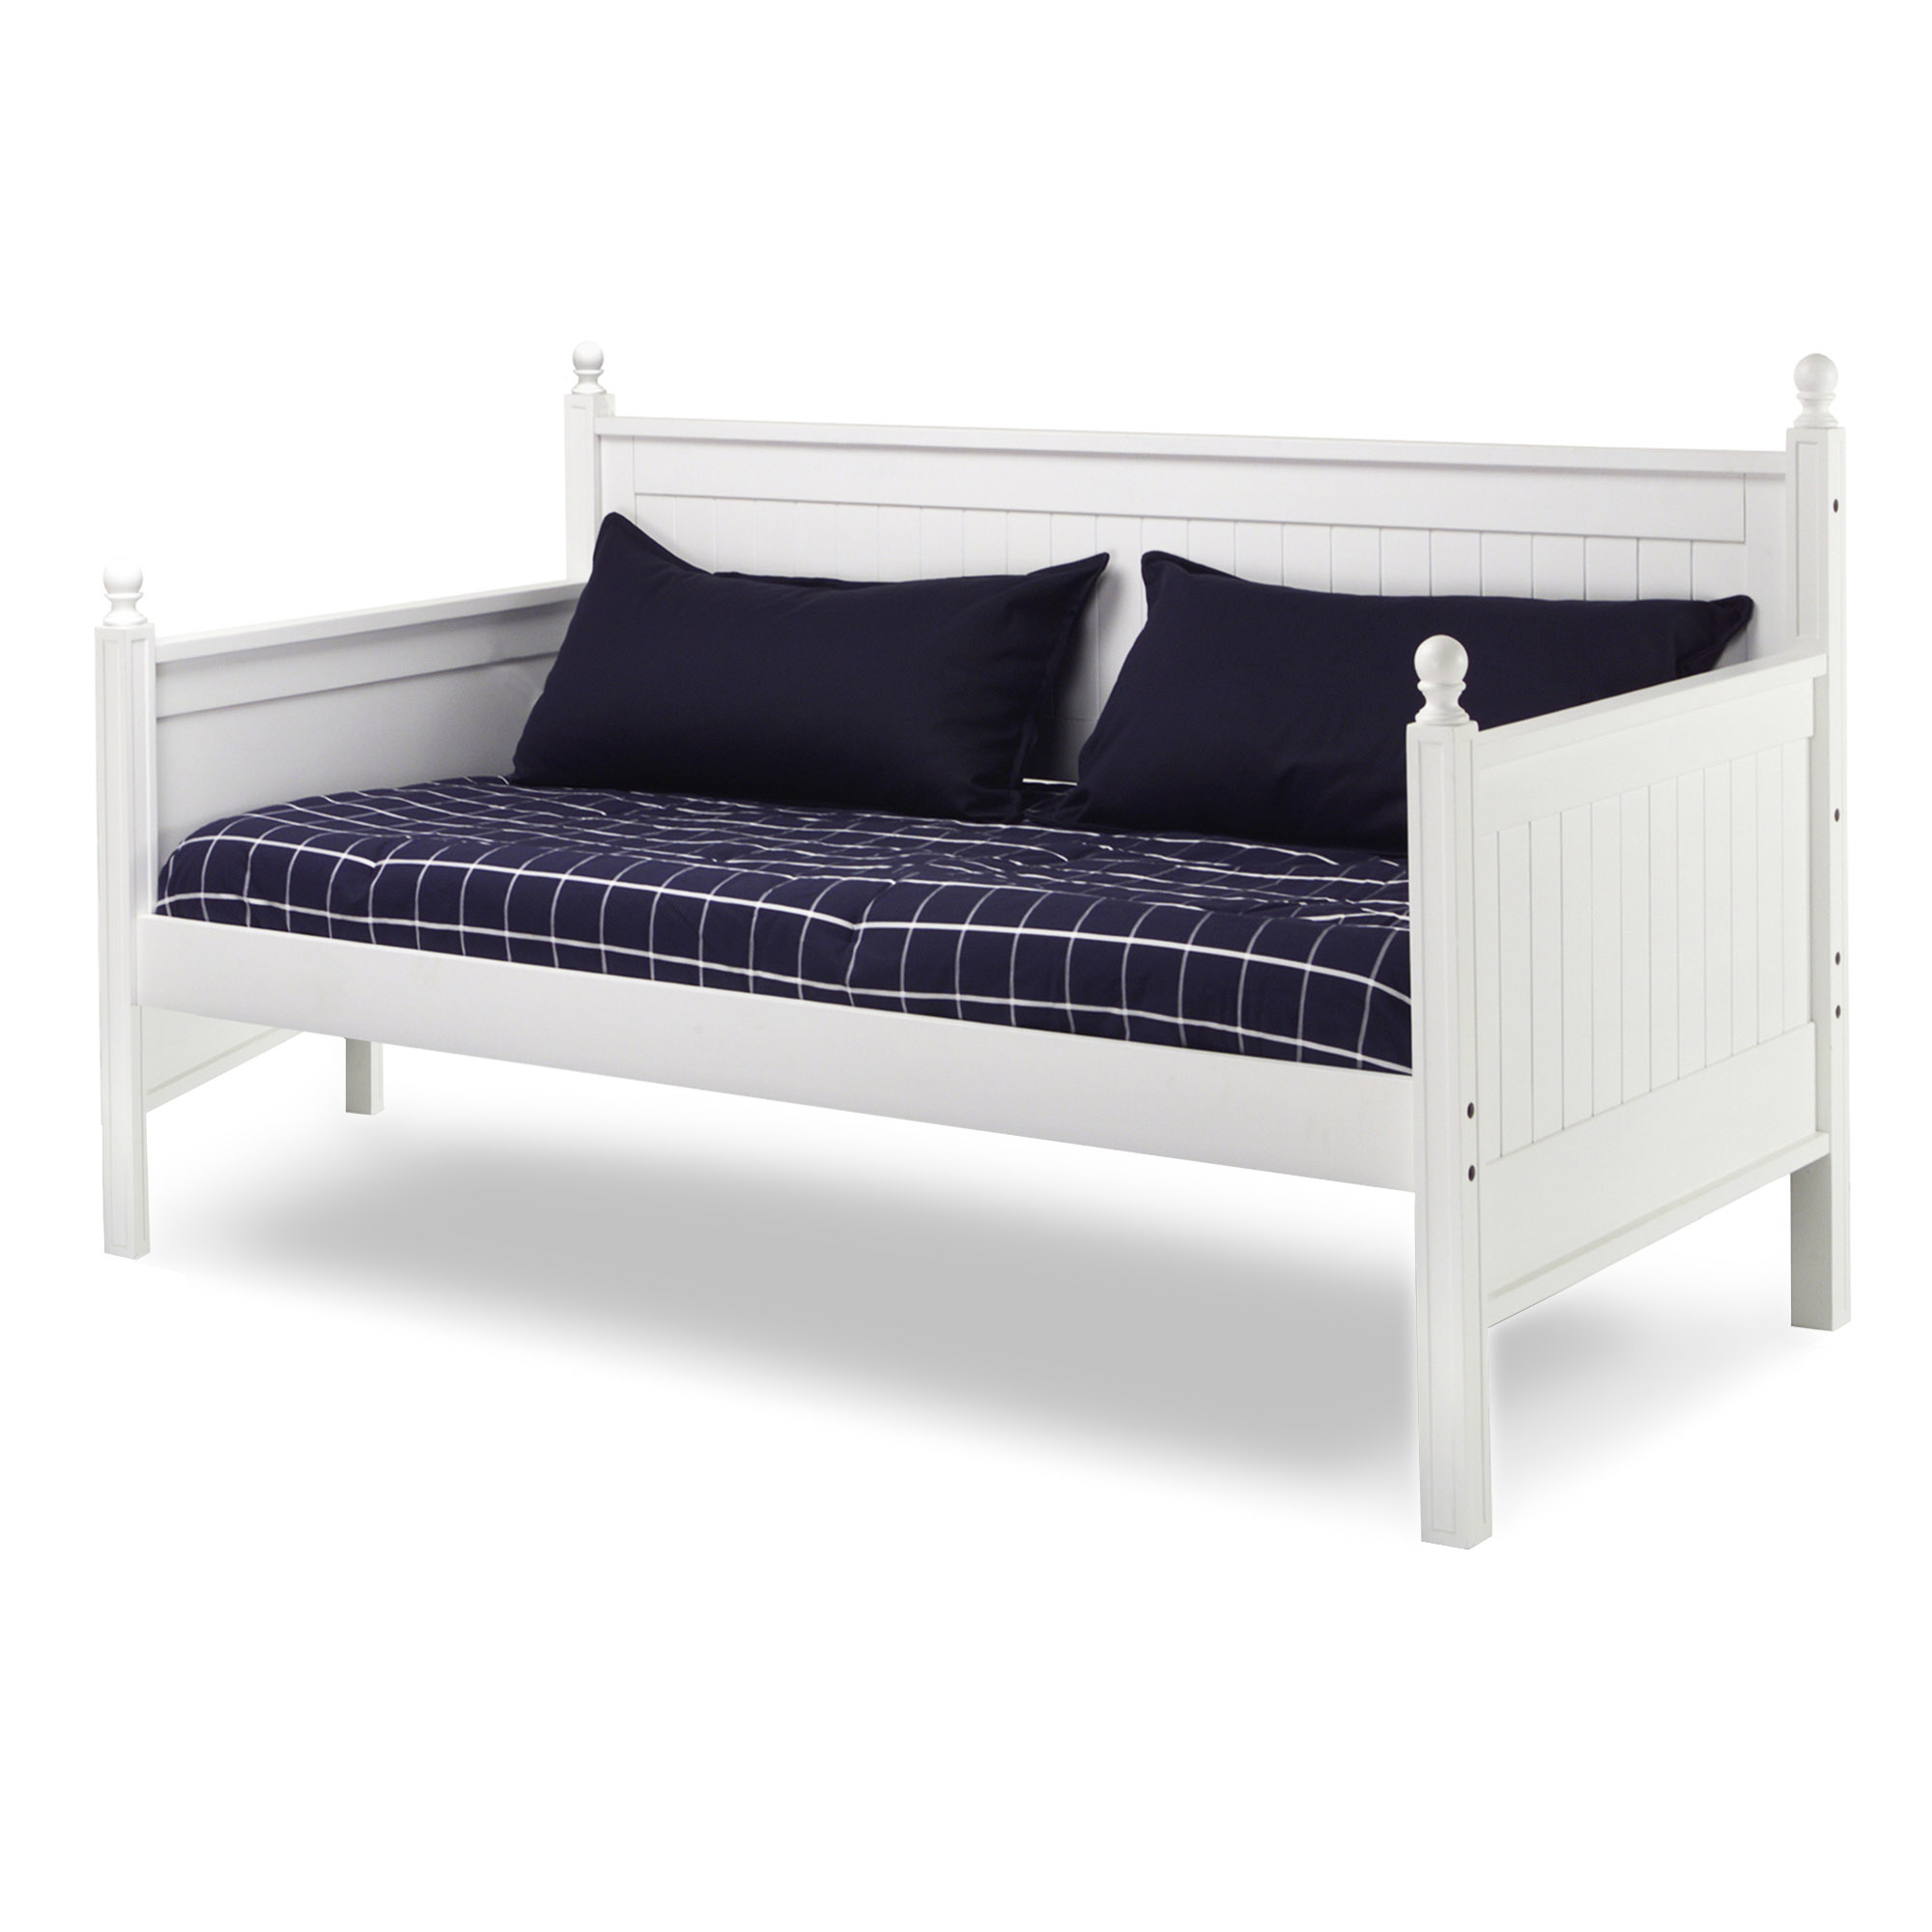 Casey Complete Wood Daybed with Ball Finials, White Finish, Twin